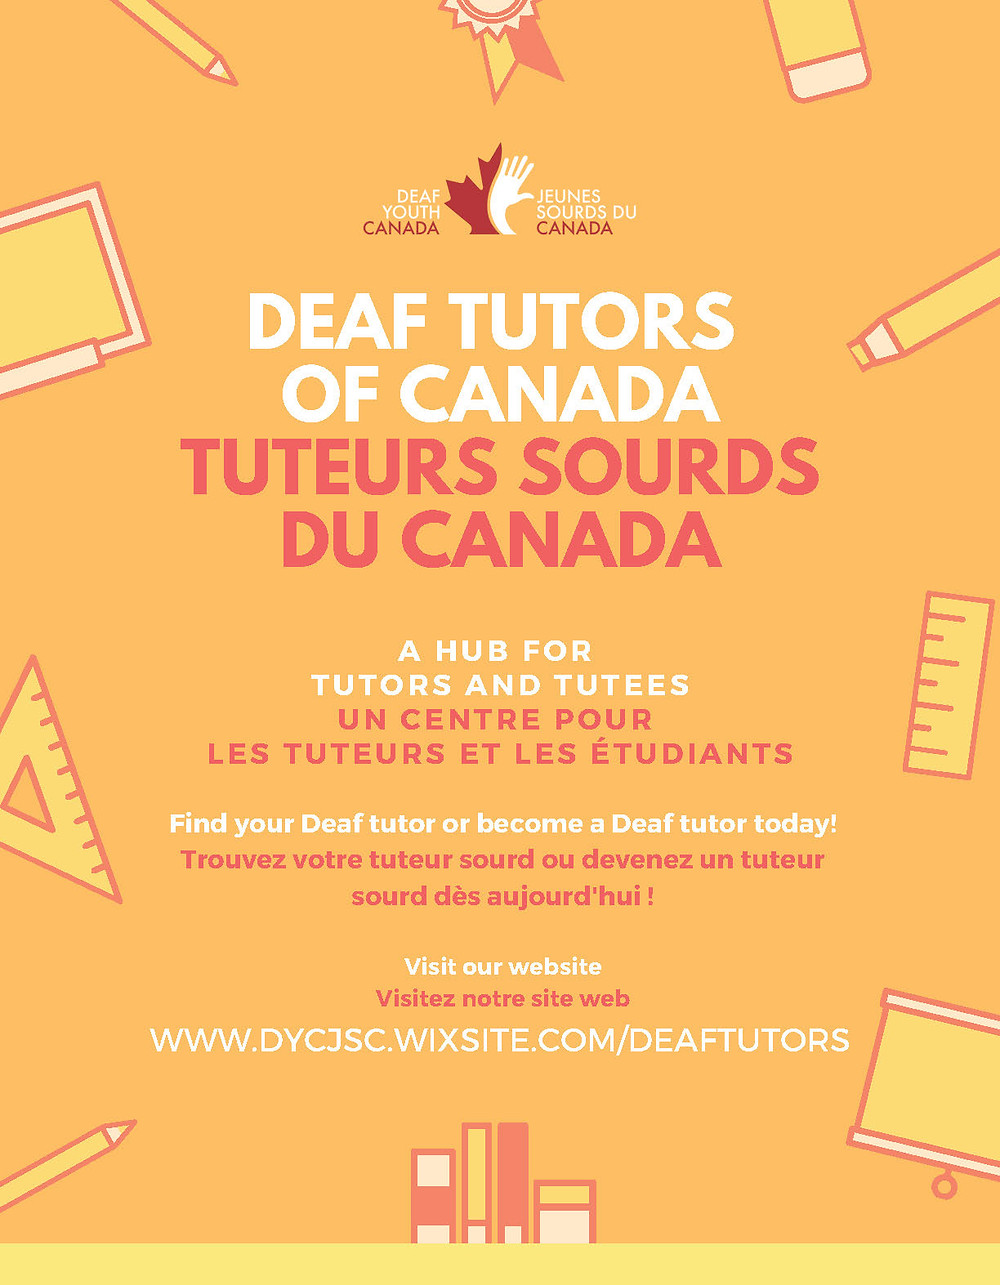 Deaf tutors of Canada - A hub for Tutors and Tutees. Find your Deaf tutor or be come a Deaf tutor today!